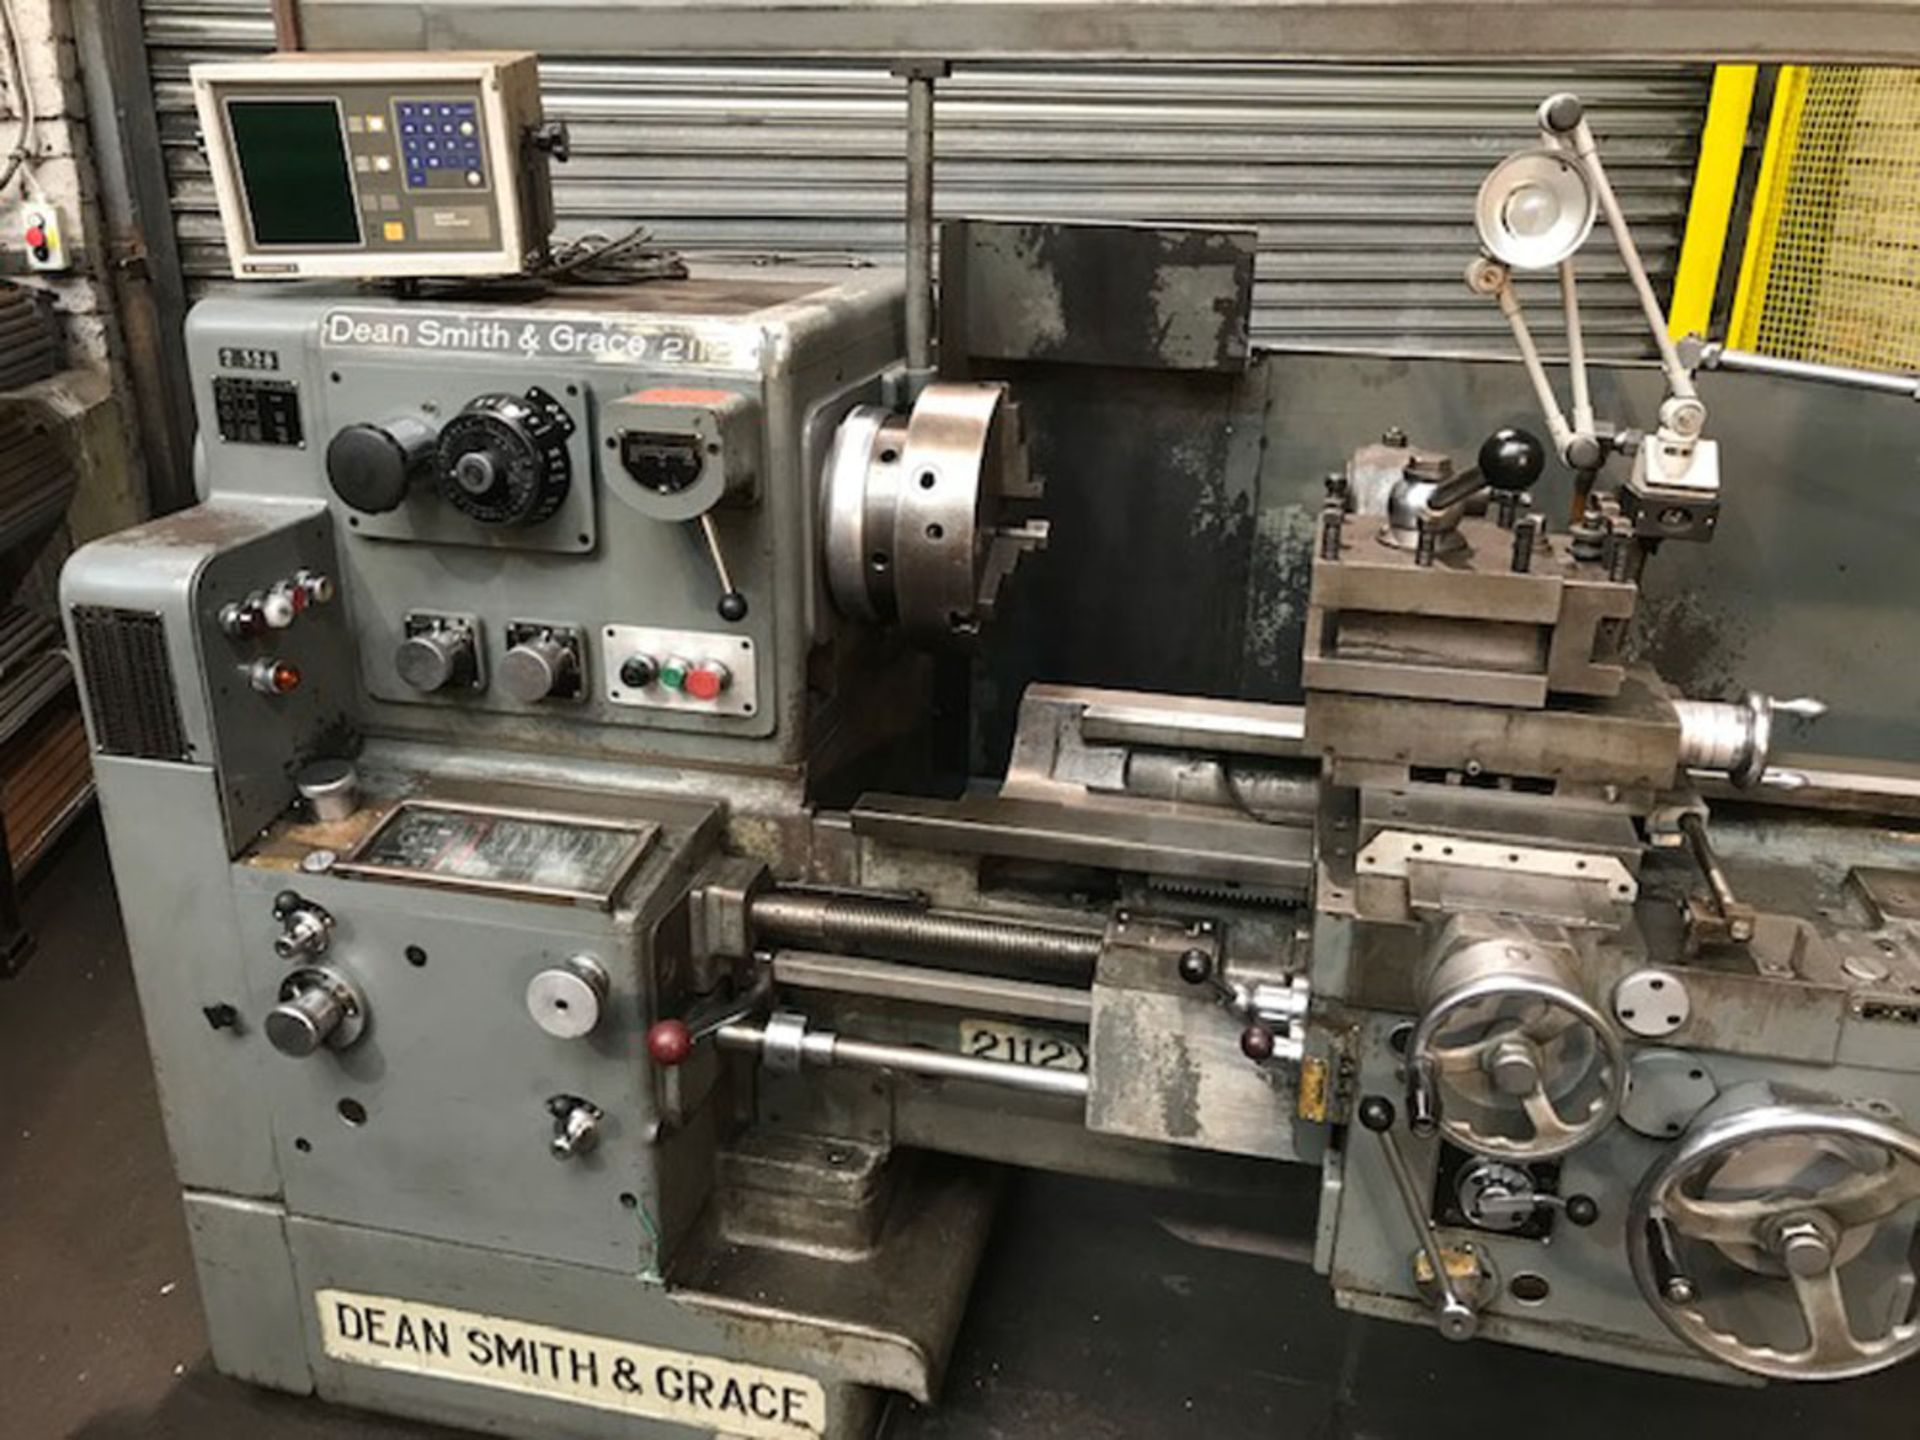 """Dean Smith & Grace 2112 x 50 Gap Bed Centre Lathe. Swing Over Bed 21"""". Distance Between Centres 50"""". - Image 2 of 9"""